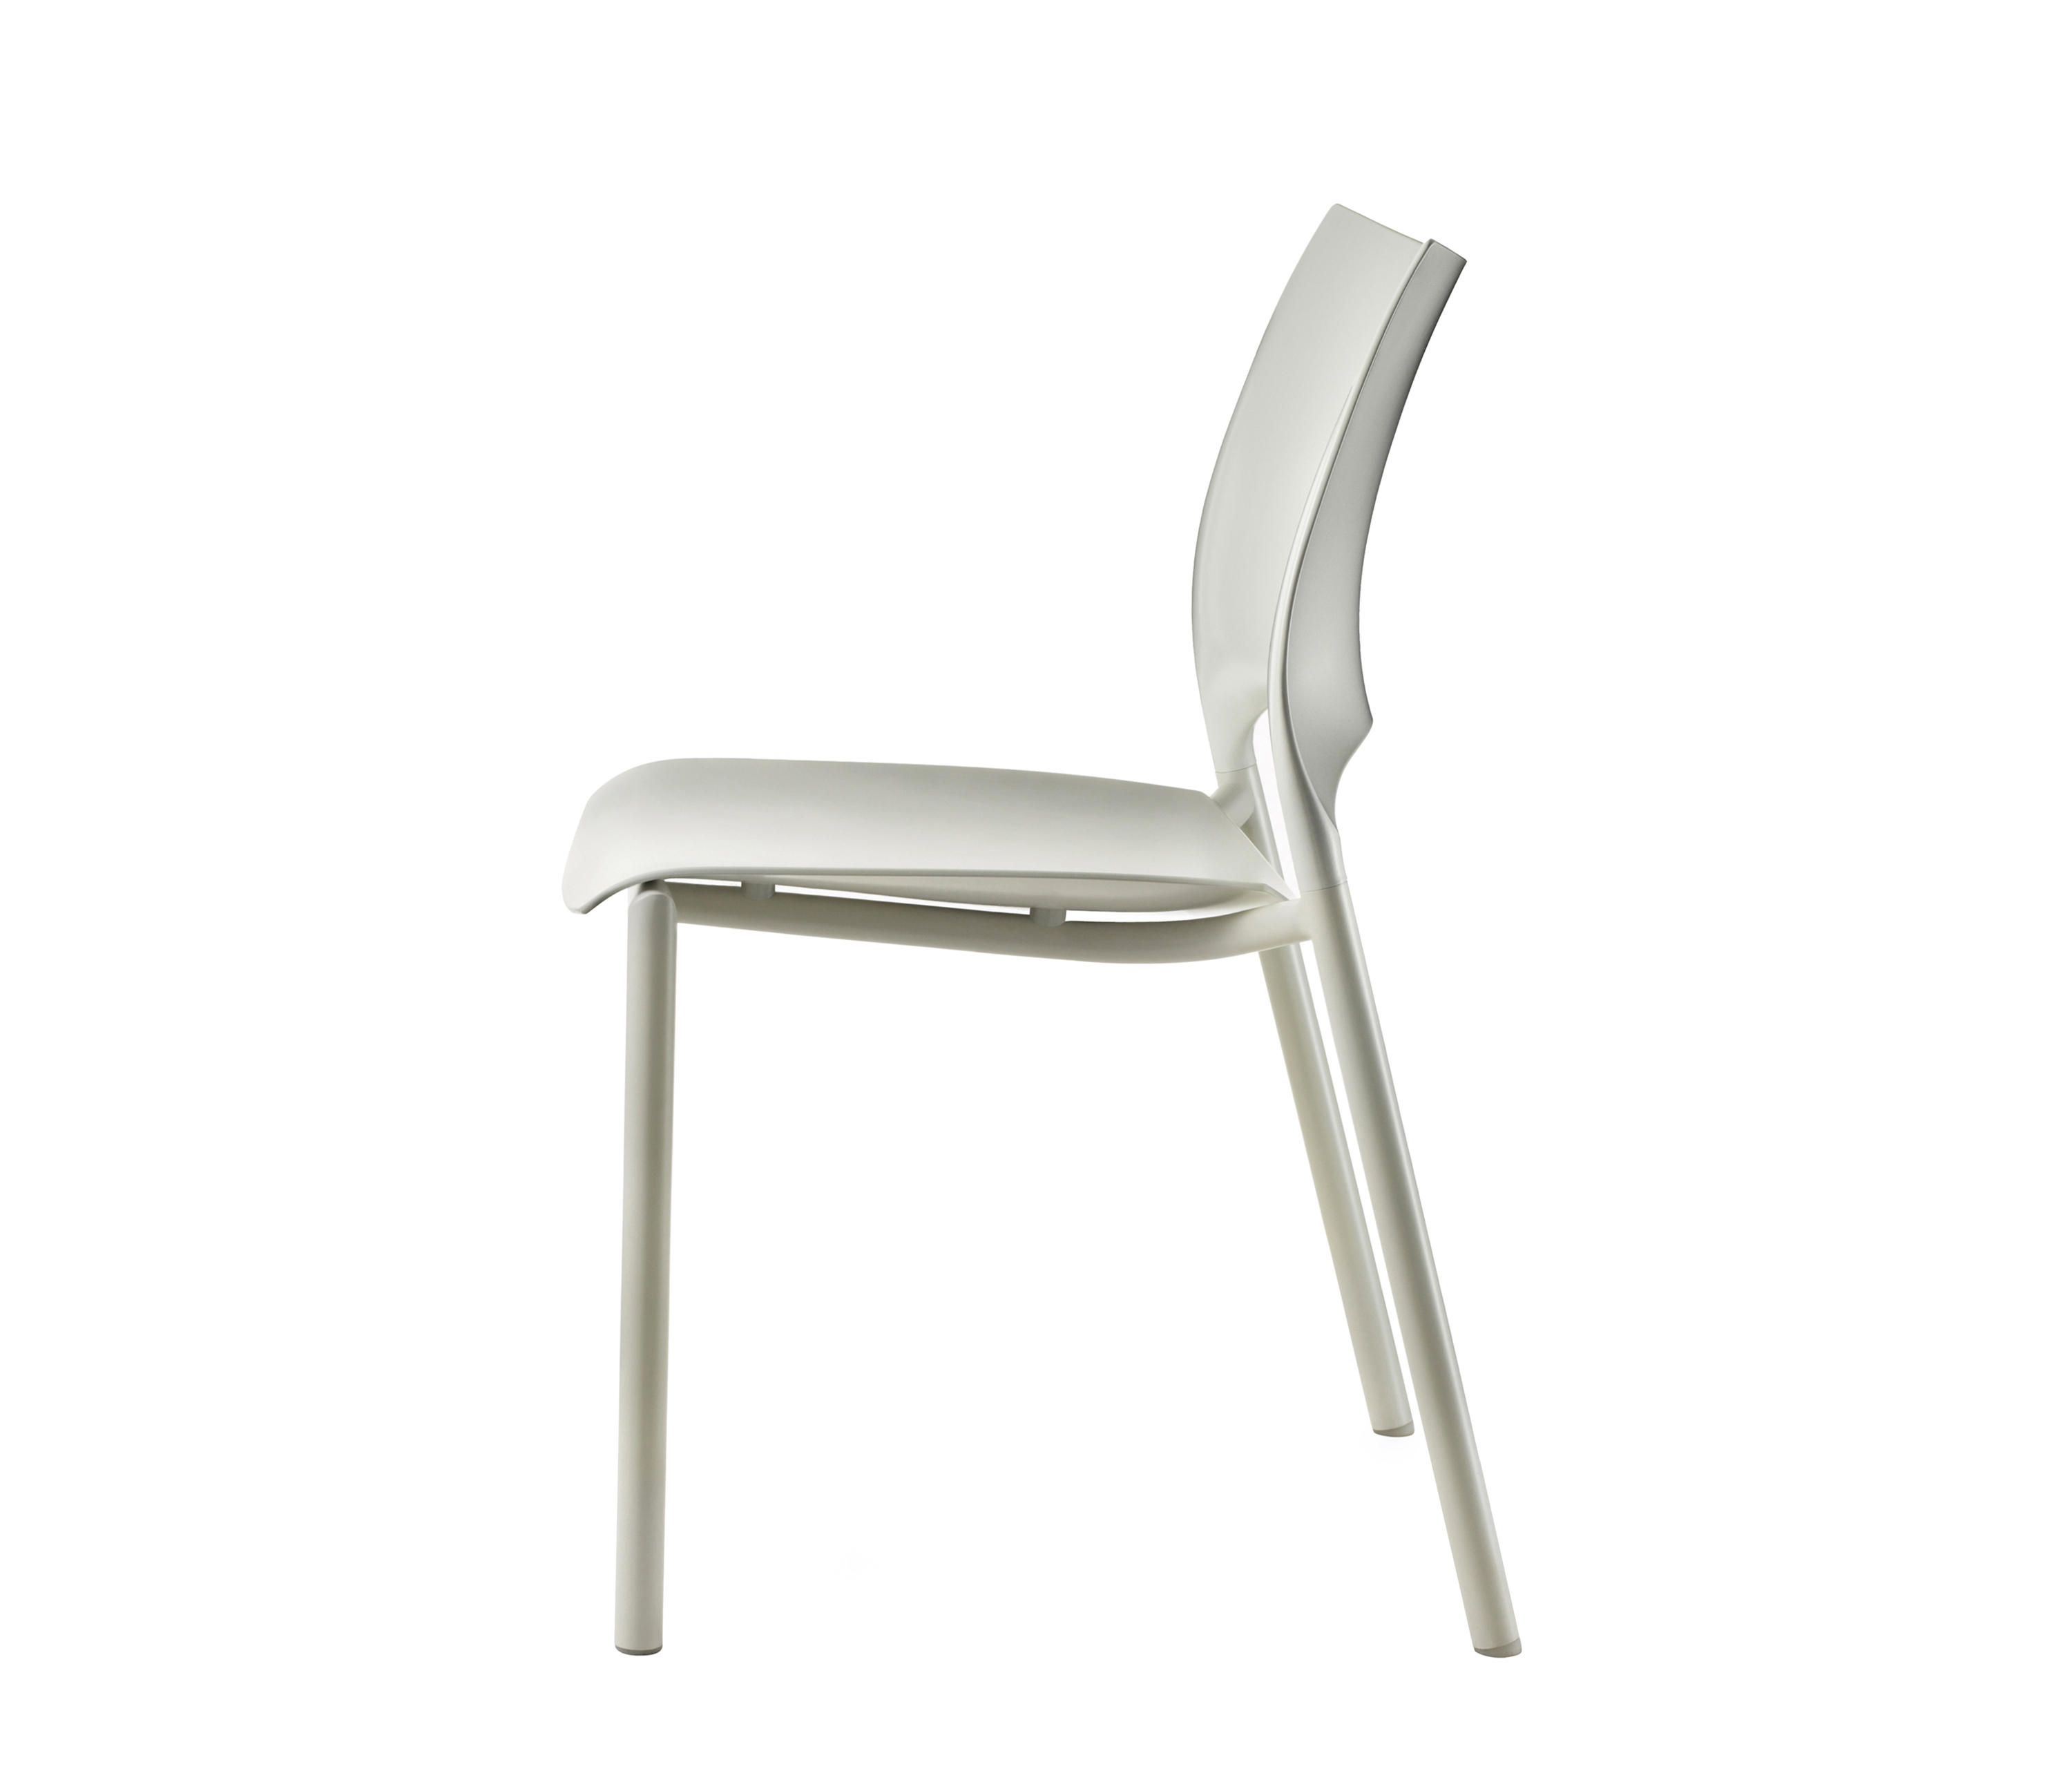 Loon 1710 Chairs From Keilhauer Architonic